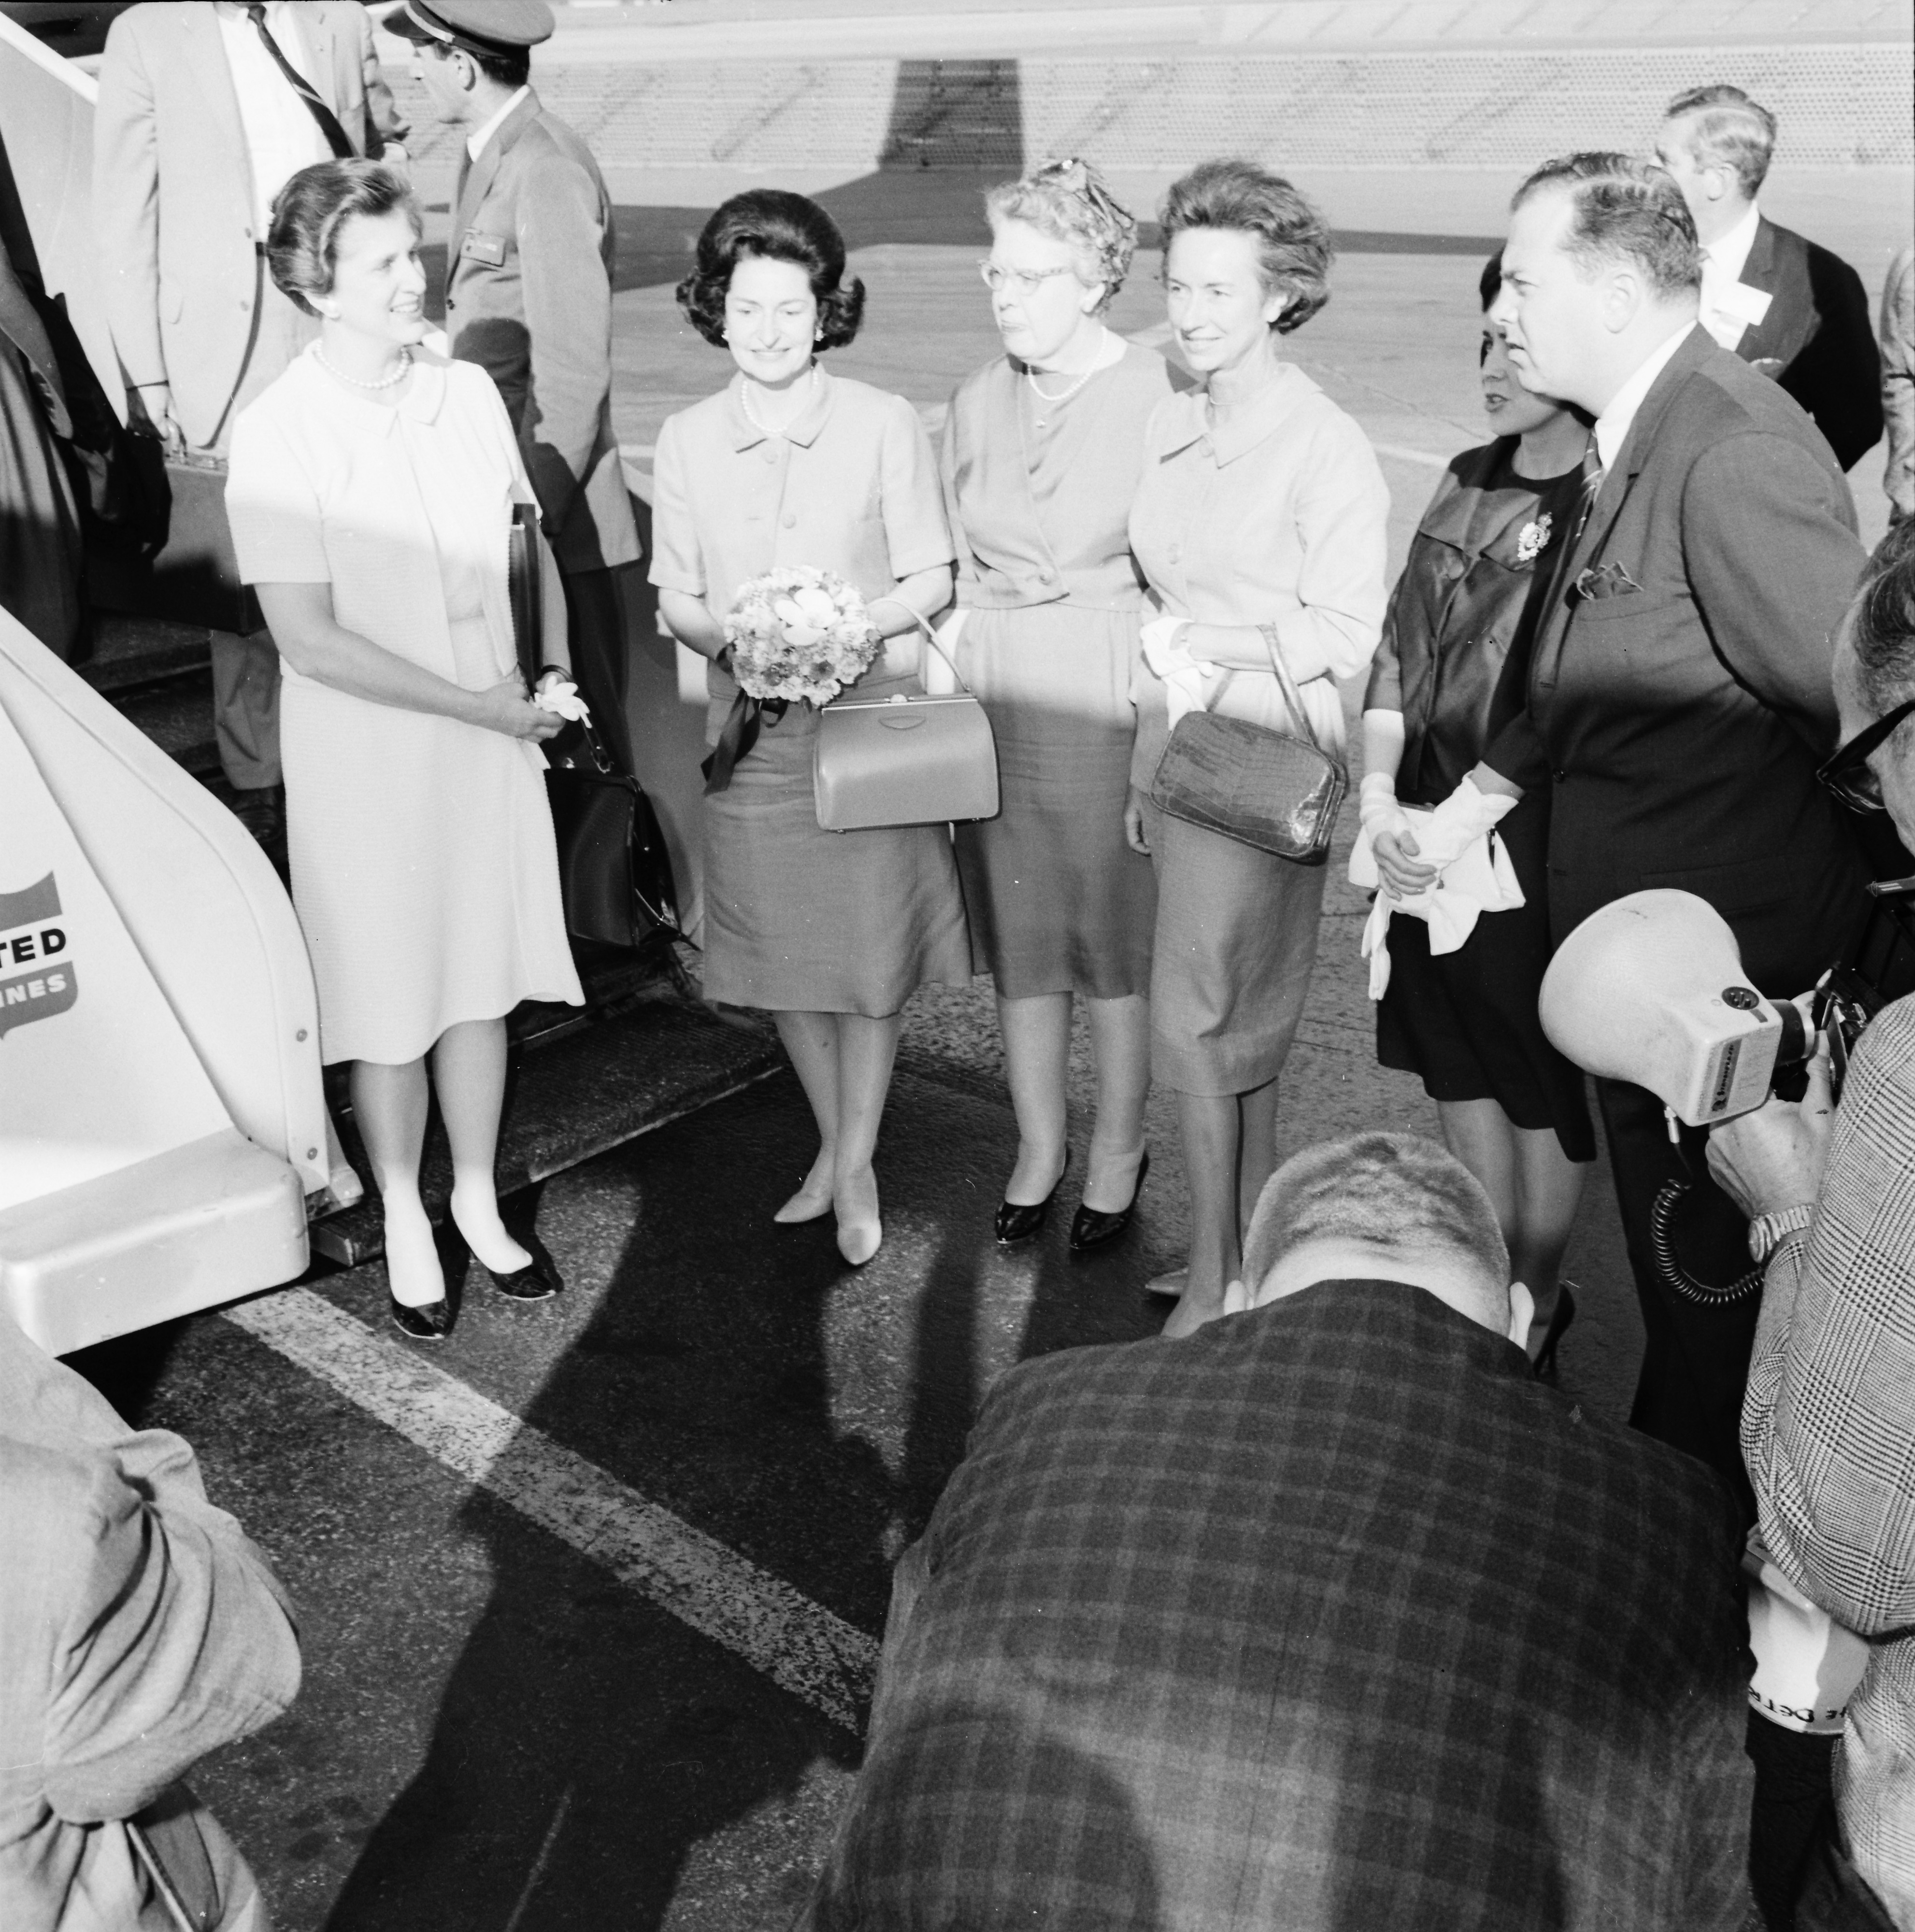 First Lady Lady Bird Johnson at Willow Run Airport, June 1964 image